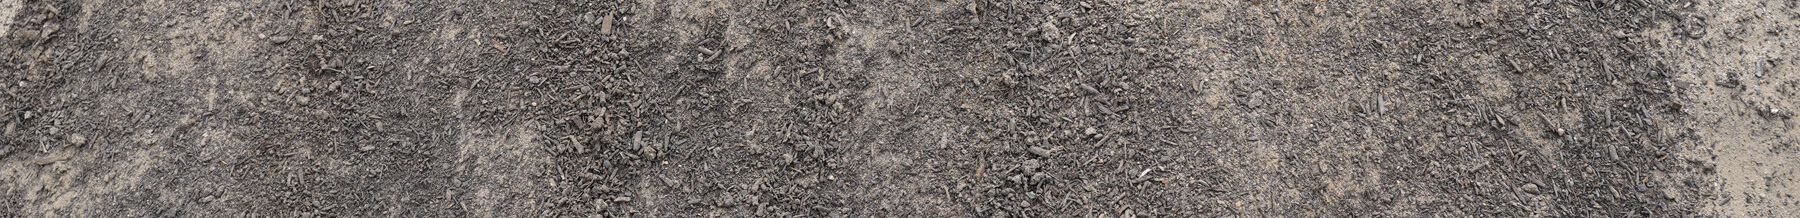 new-earth-divot-mix-wide